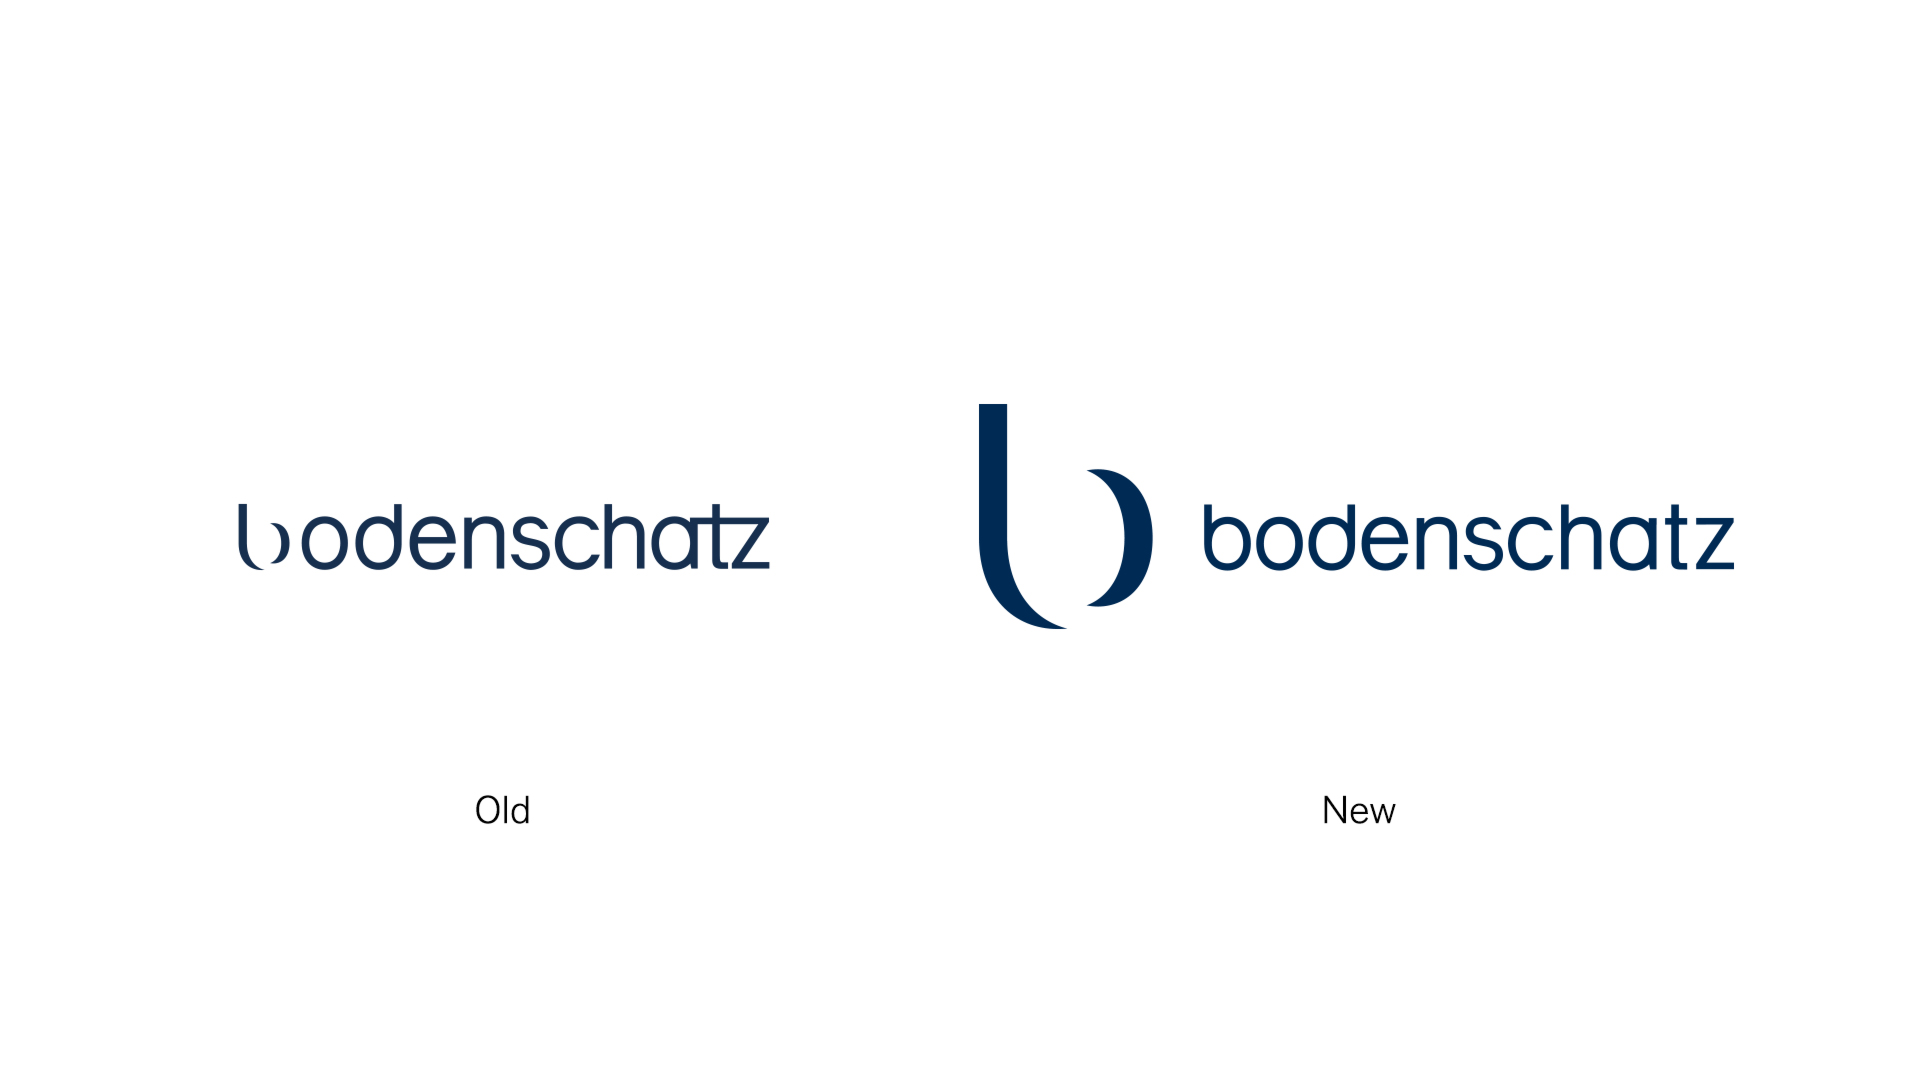 From the old logo to the new one designed by Vetica